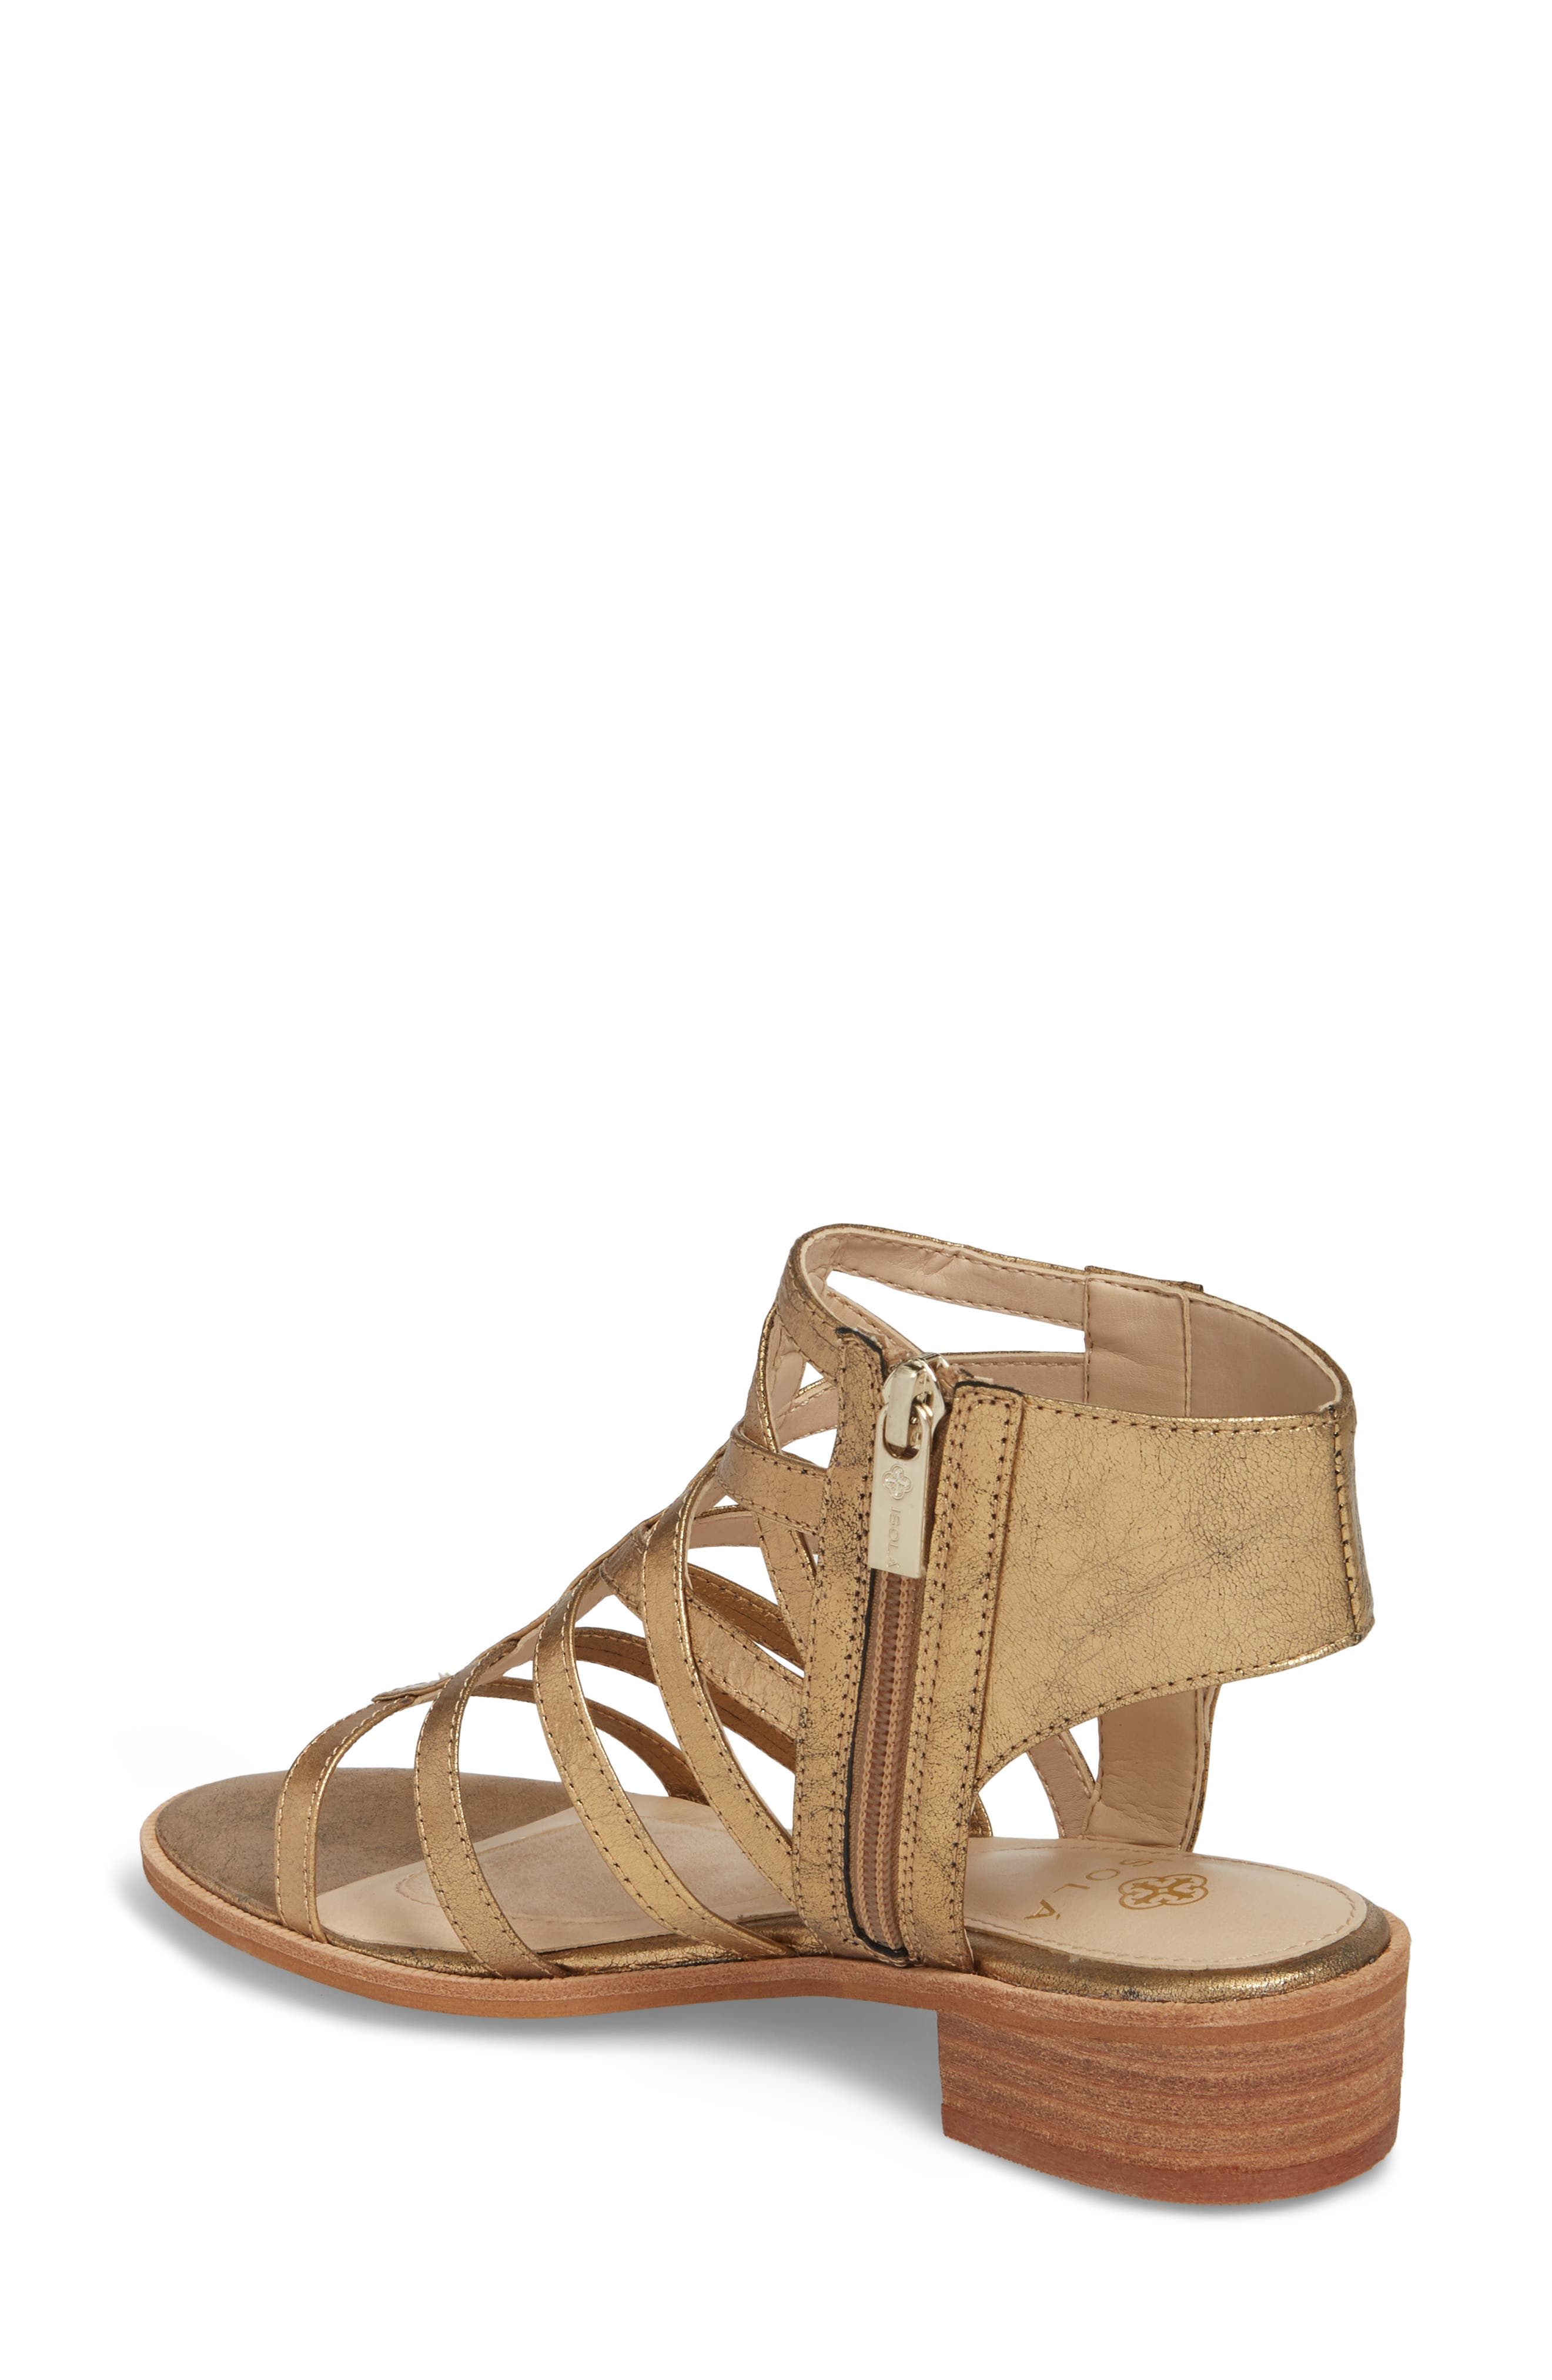 Genesis Cage Sandal,                             Alternate thumbnail 2, color,                             OLD GOLD LEATHER